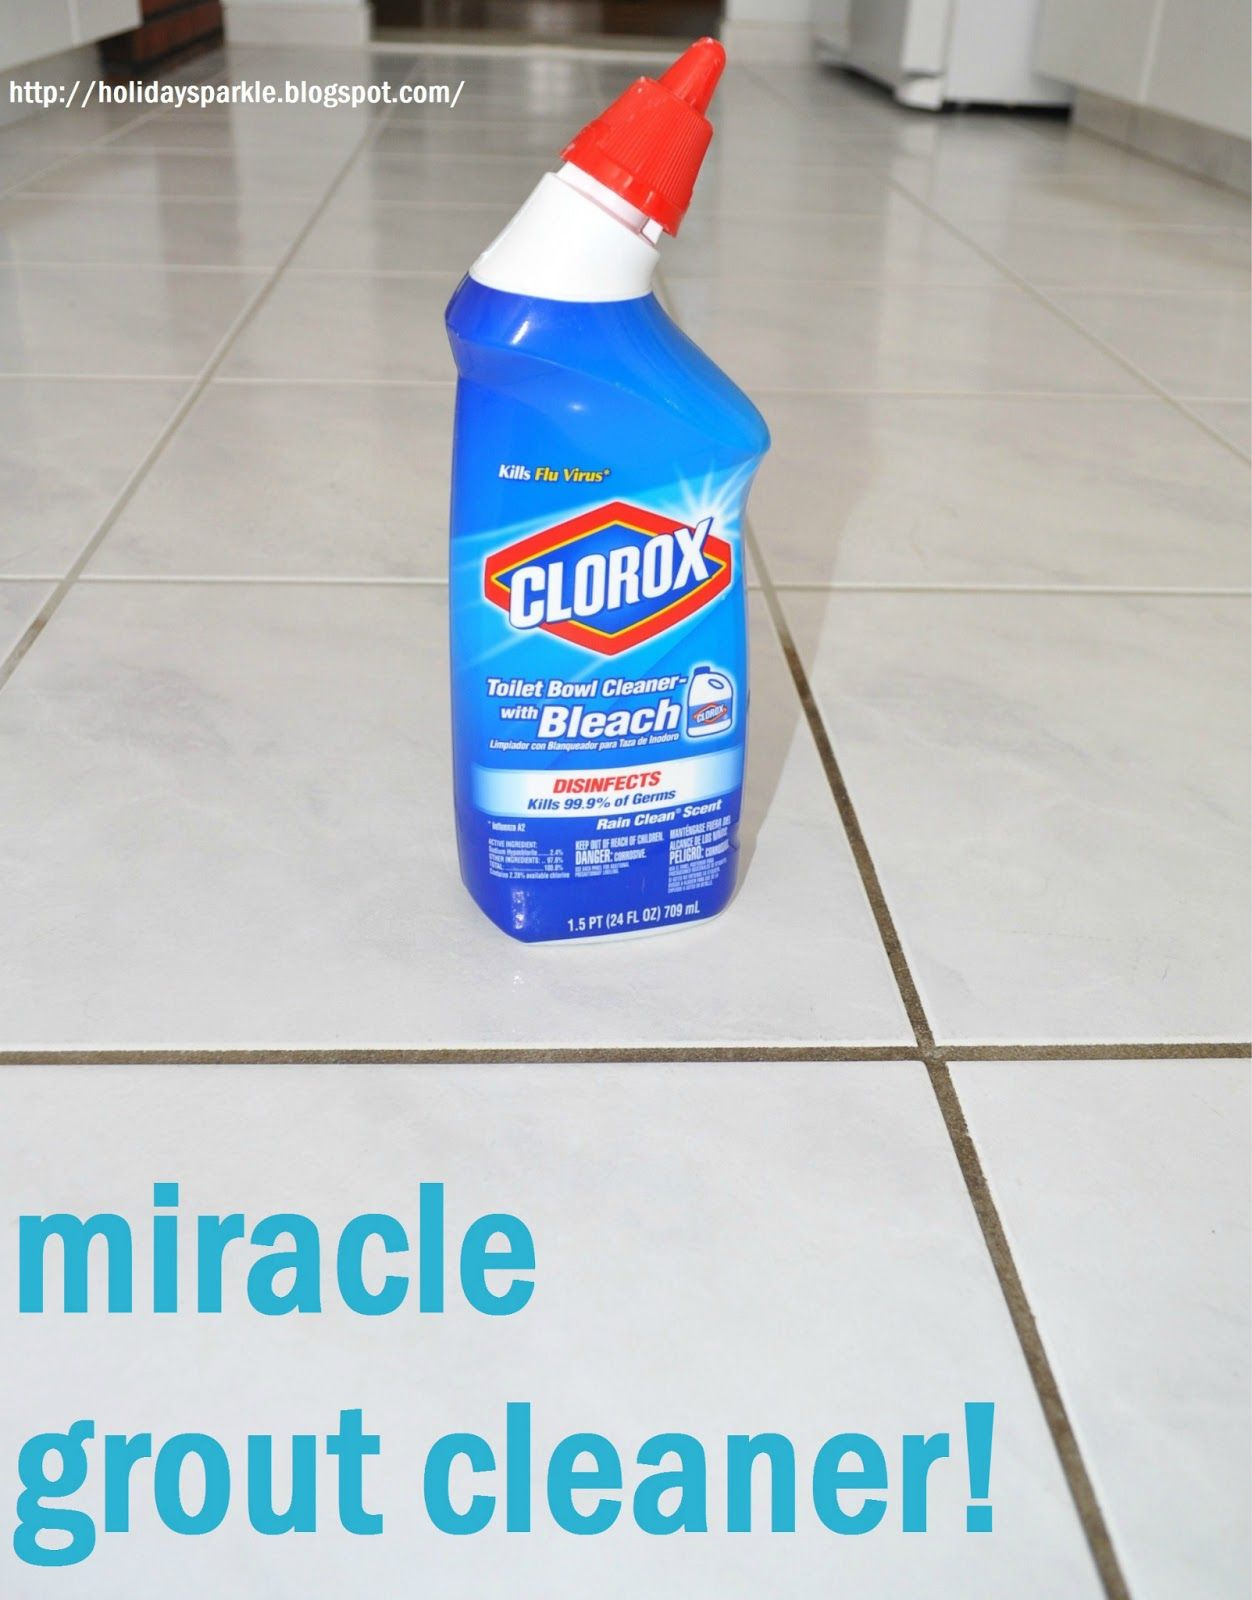 Clean grout  Clorox Toilet Bowl Cleaner with Bleach